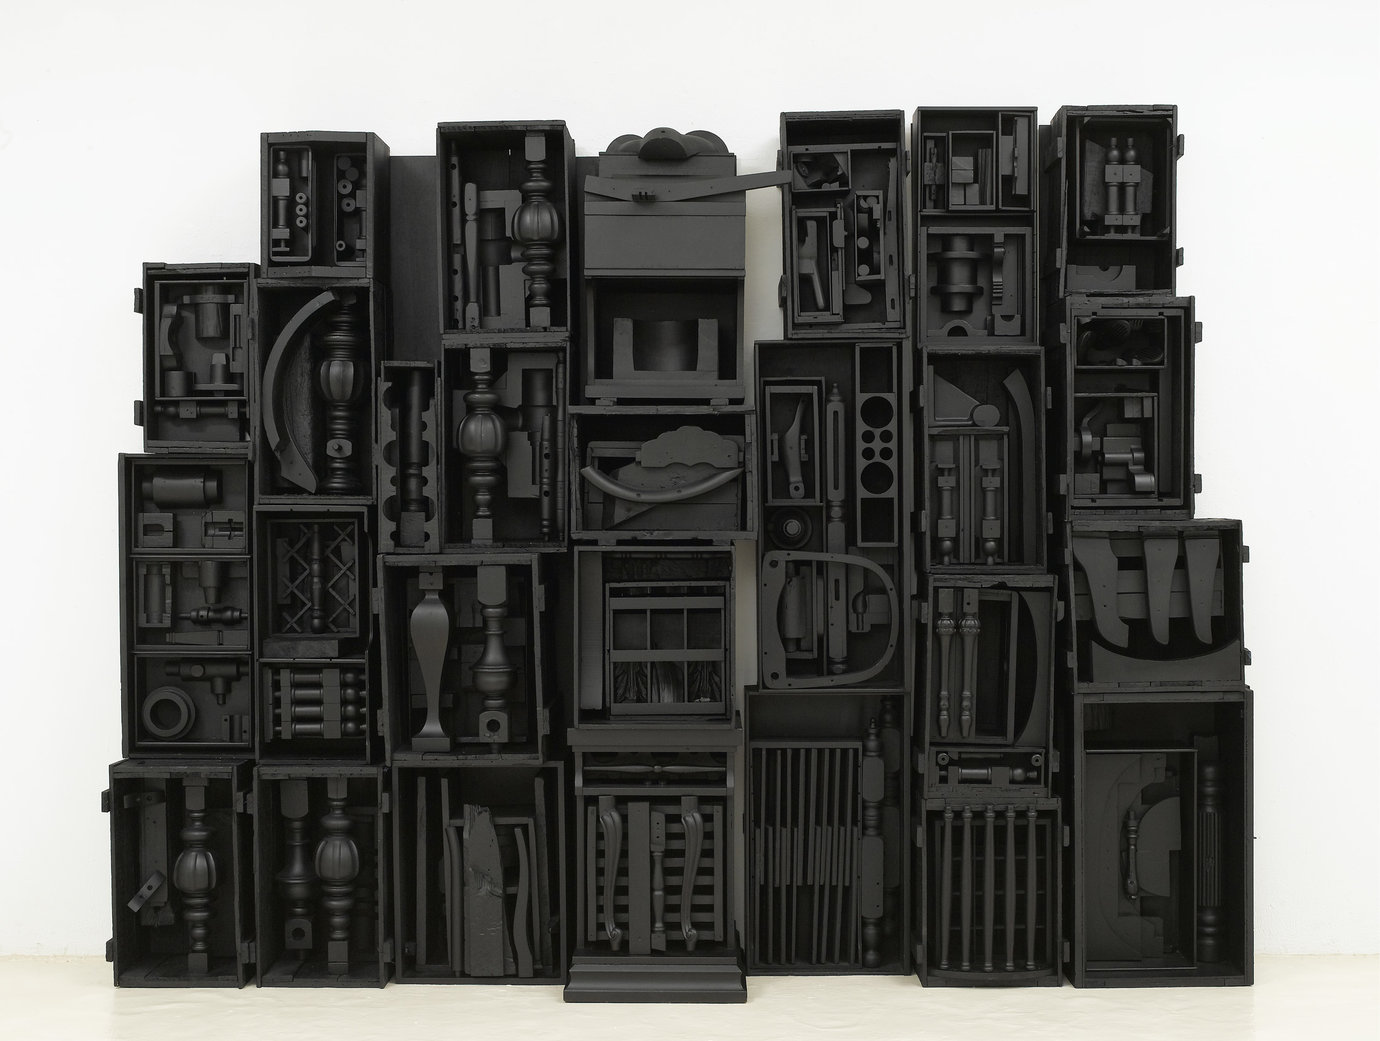 ", 1964. Wood painted black, 8' 4"" x 10' 11-1/2"" x 1' 6-3/4"" (254 cm x 334 cm x 47.6 cm), 16 elements plus 2 part base, 18 parts total."